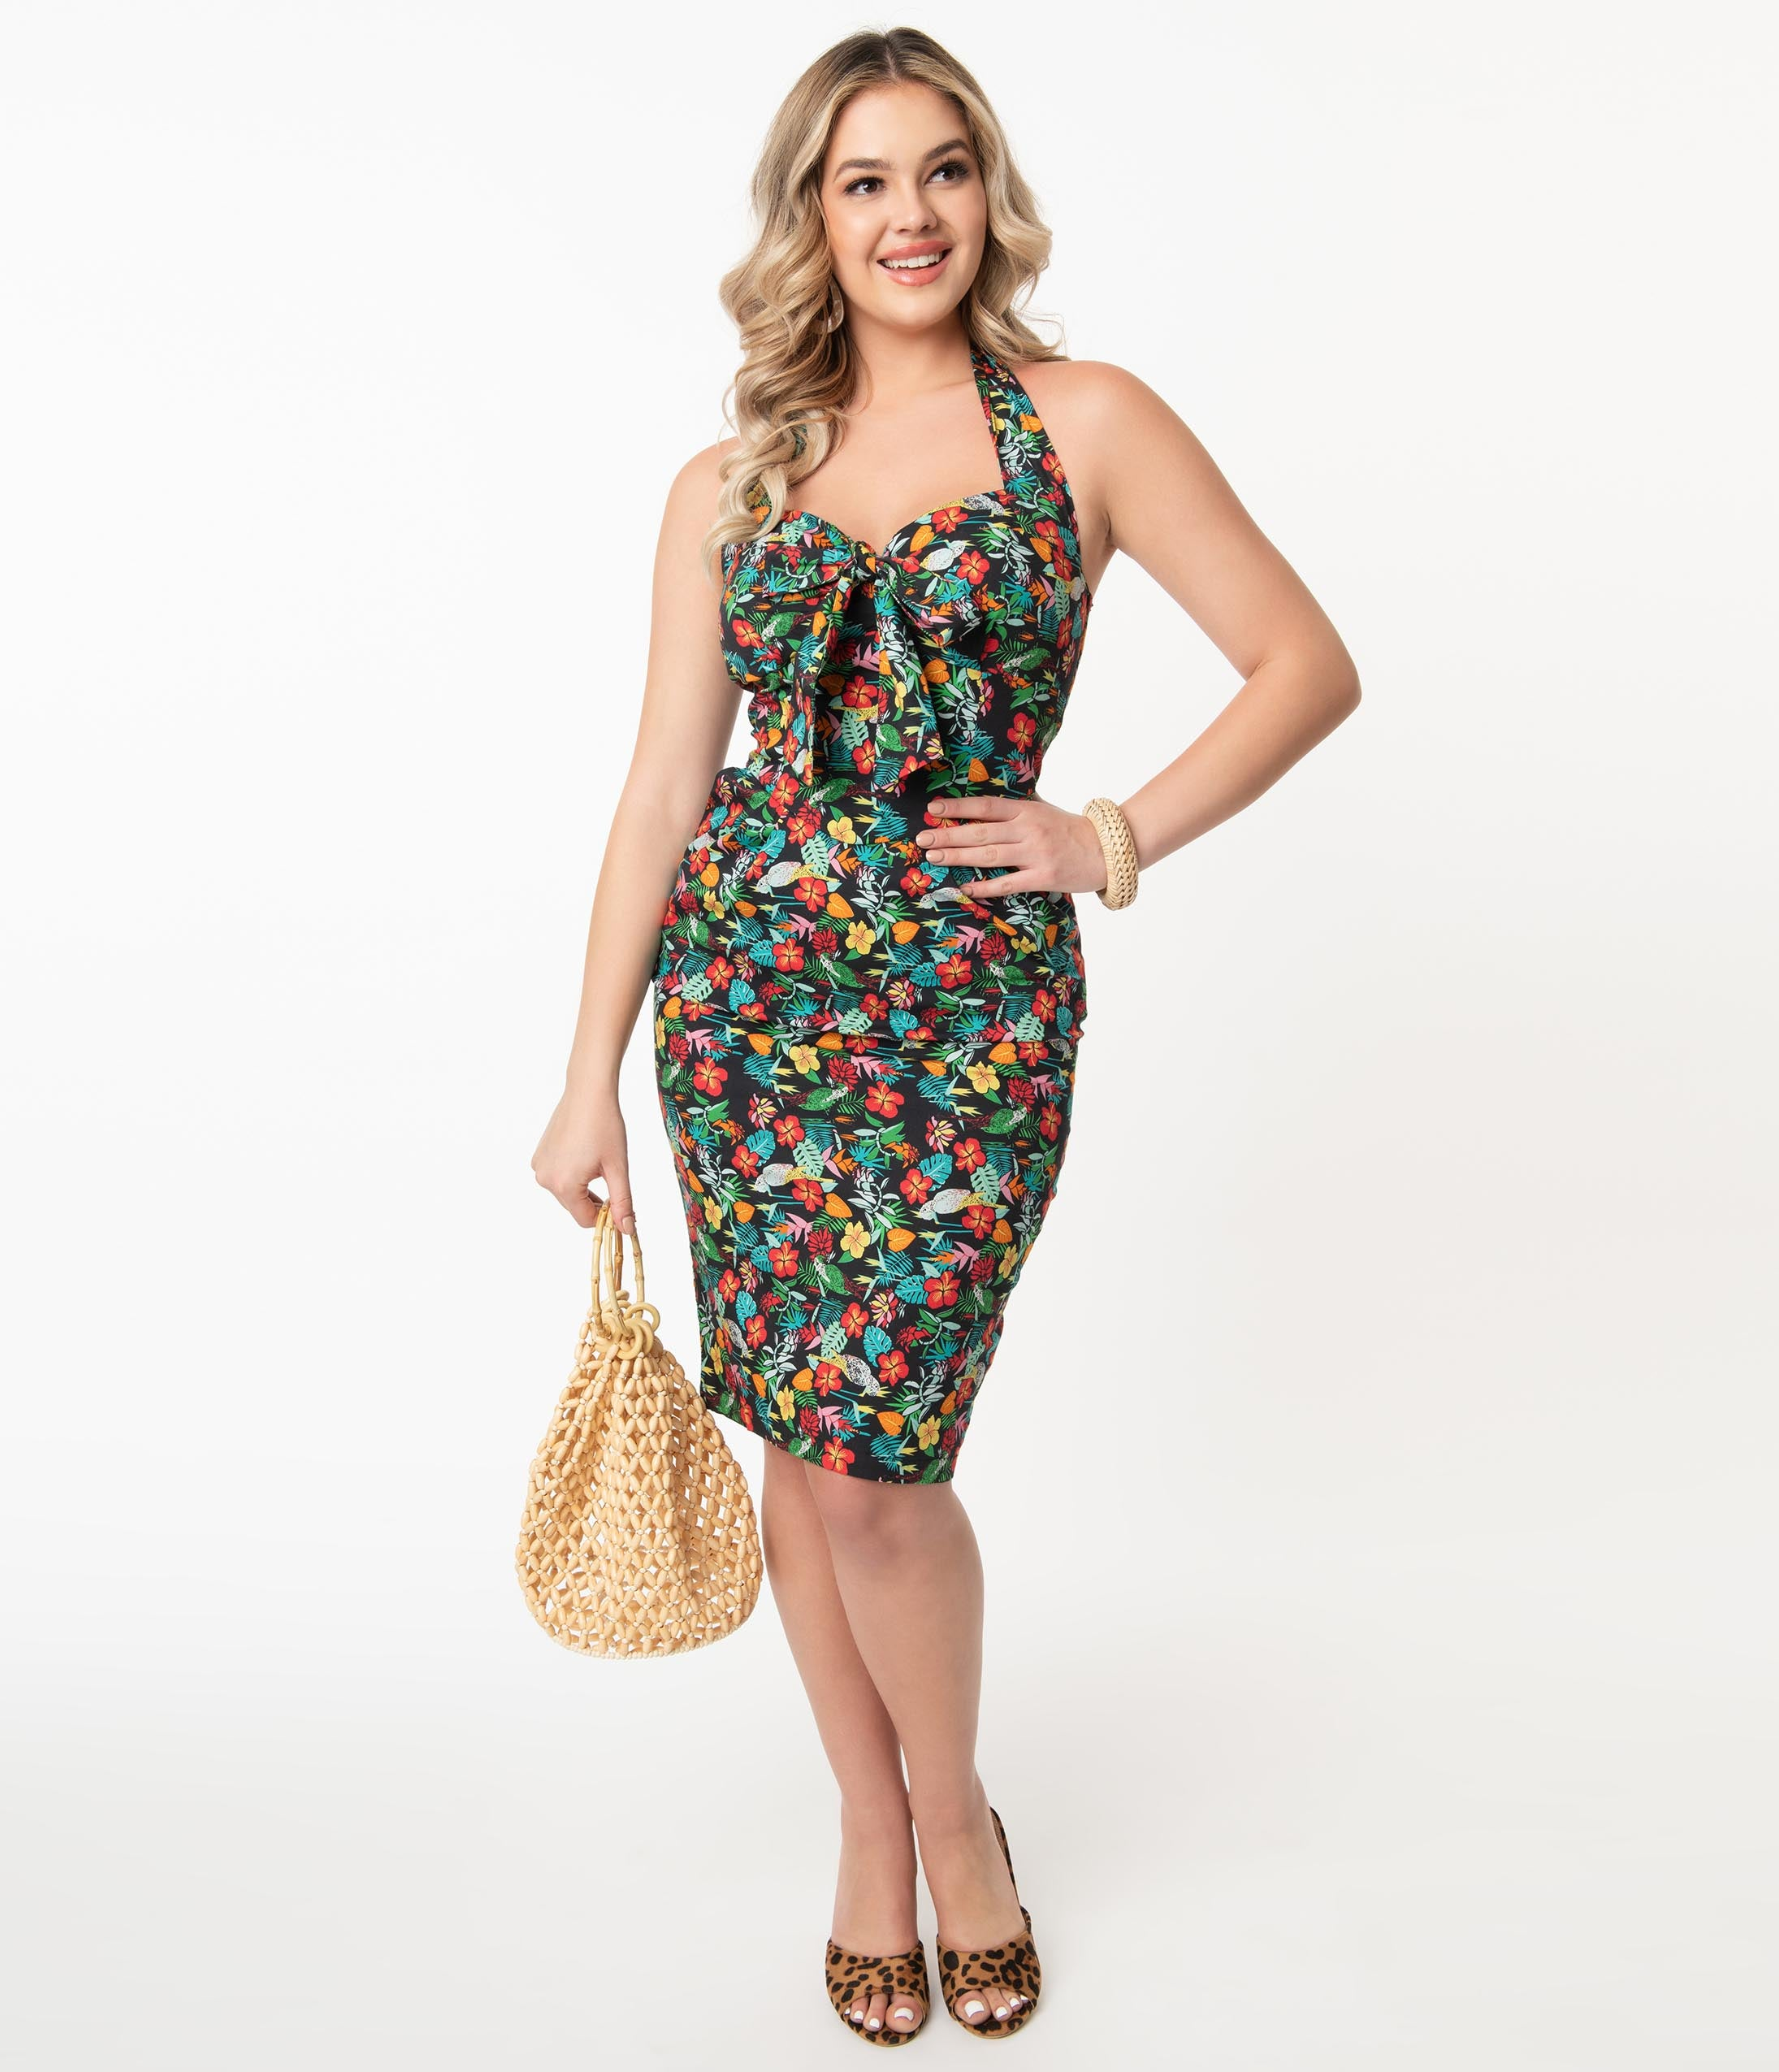 Pin Up Dresses | Pinup Clothing & Fashion Multicolor Tropical Floral Print Pippa Wiggle Dress $88.00 AT vintagedancer.com